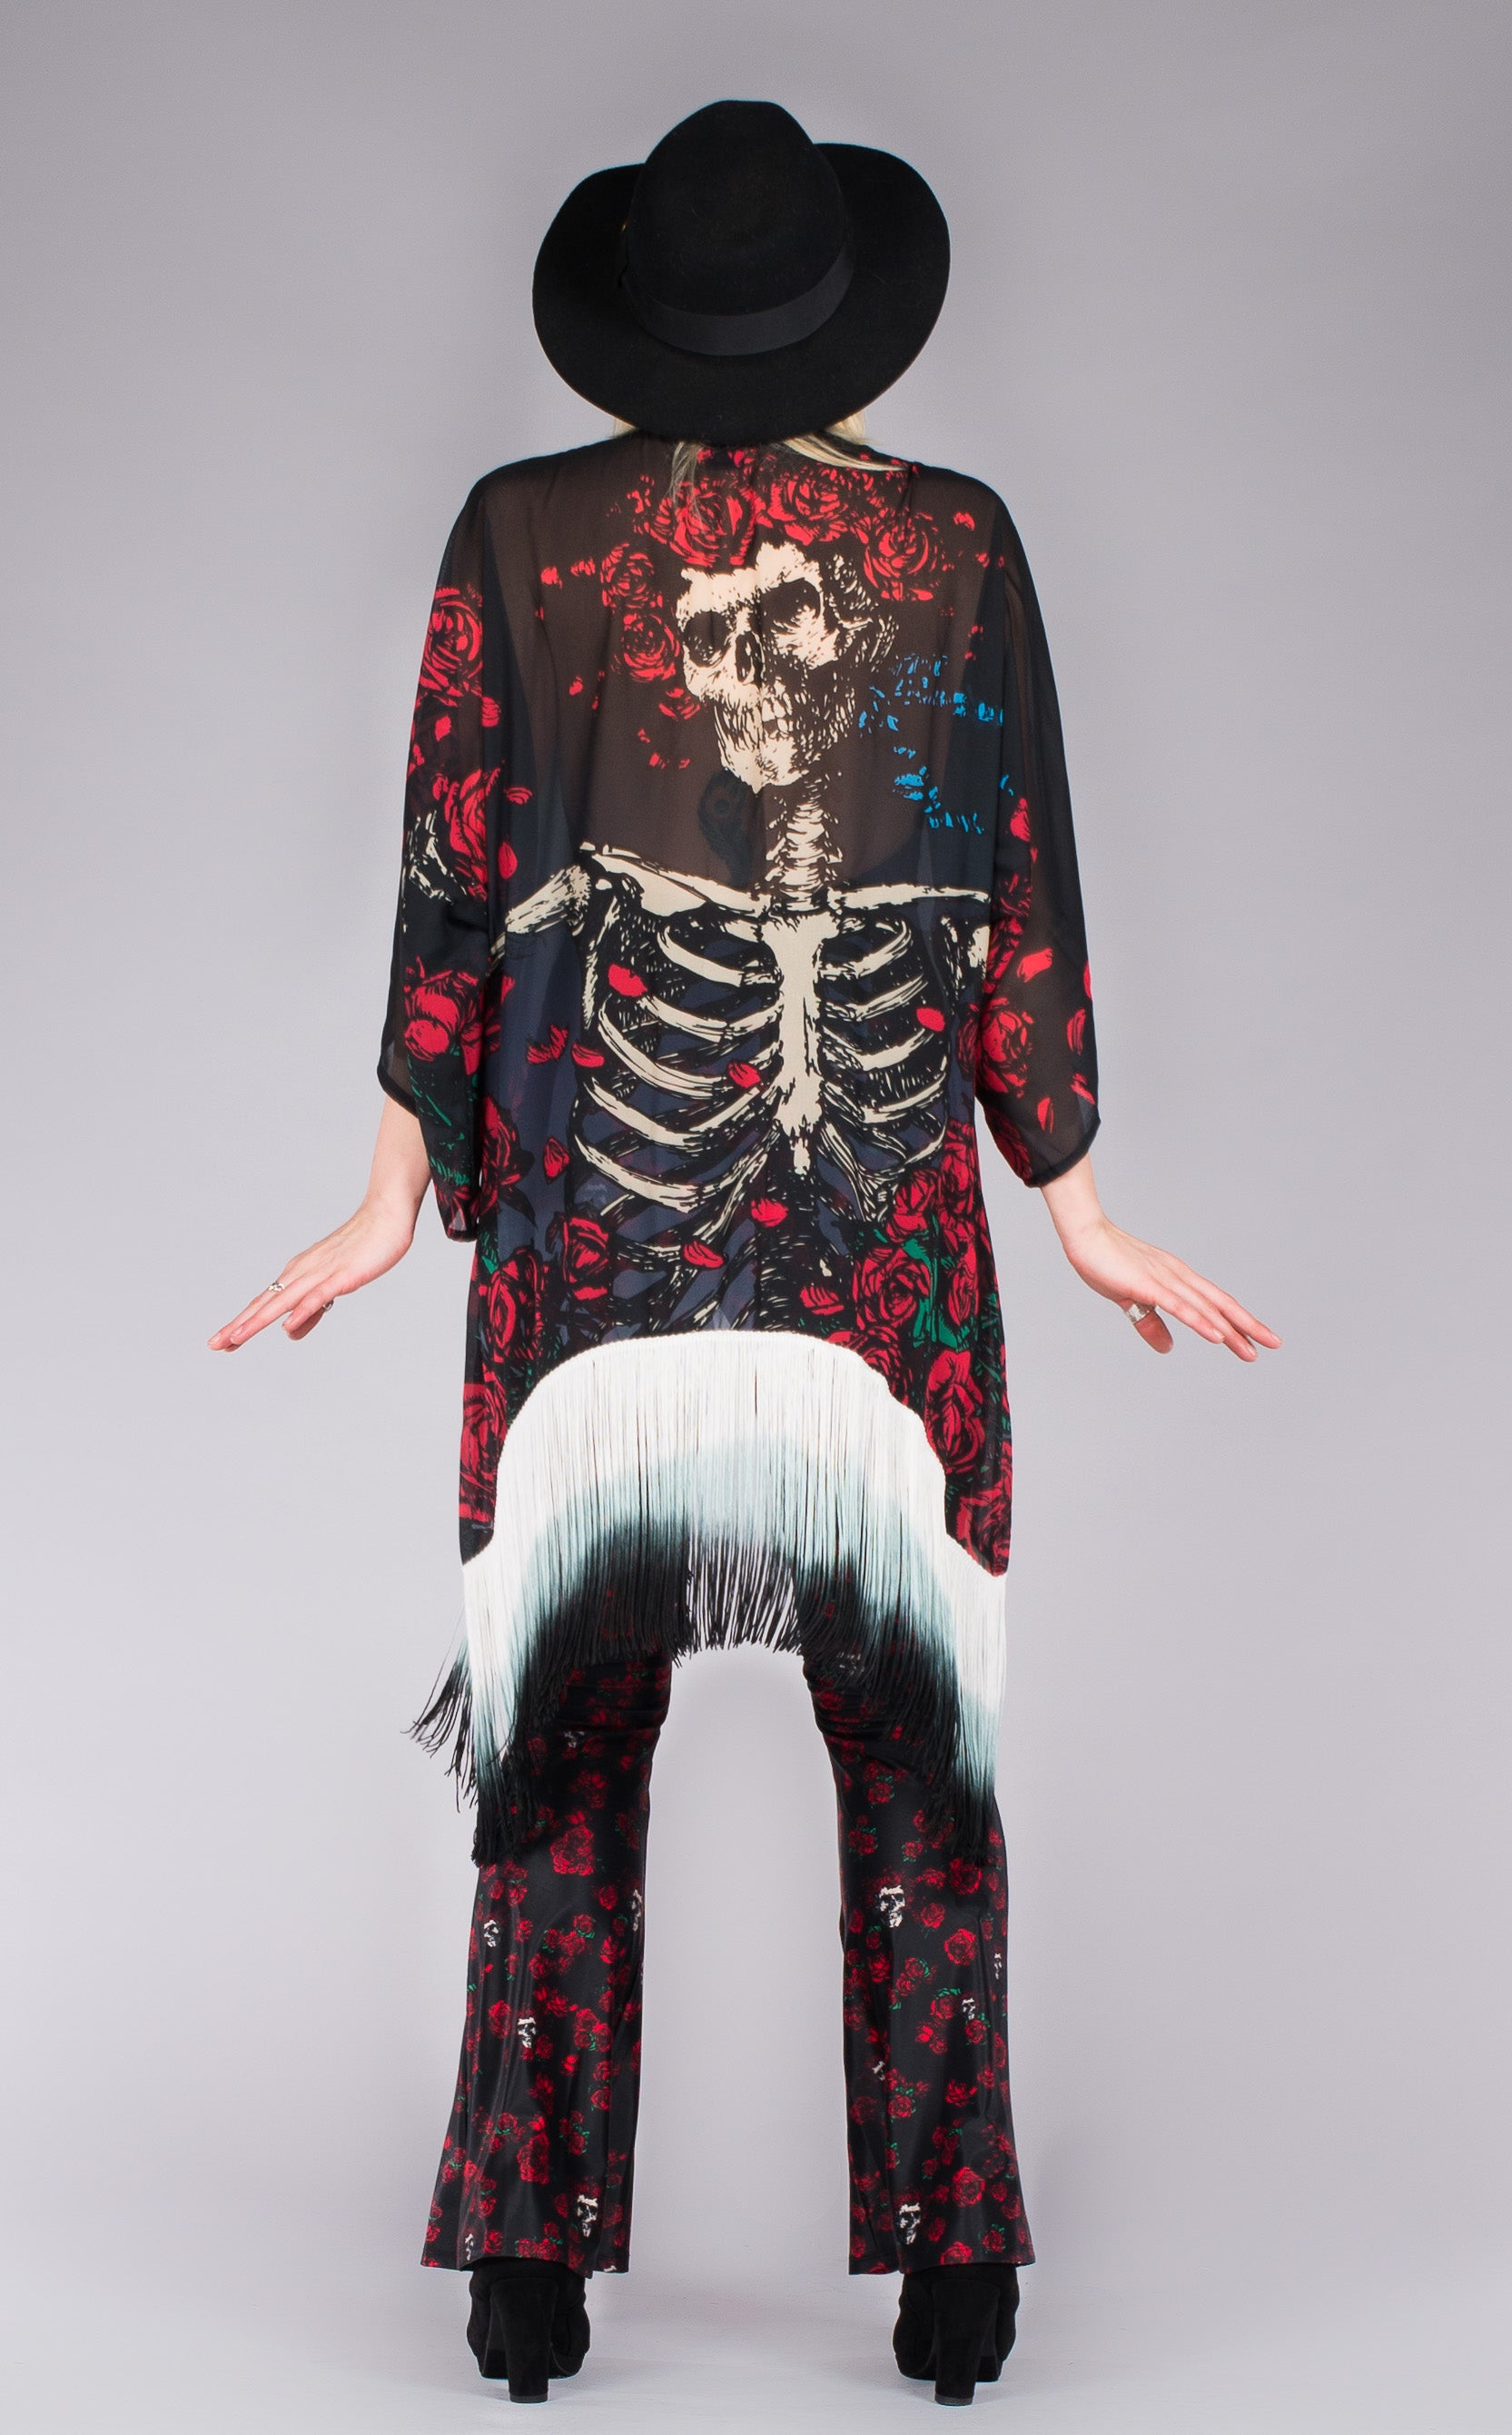 Grateful dead festival clothing-kimono with skeleton and roses